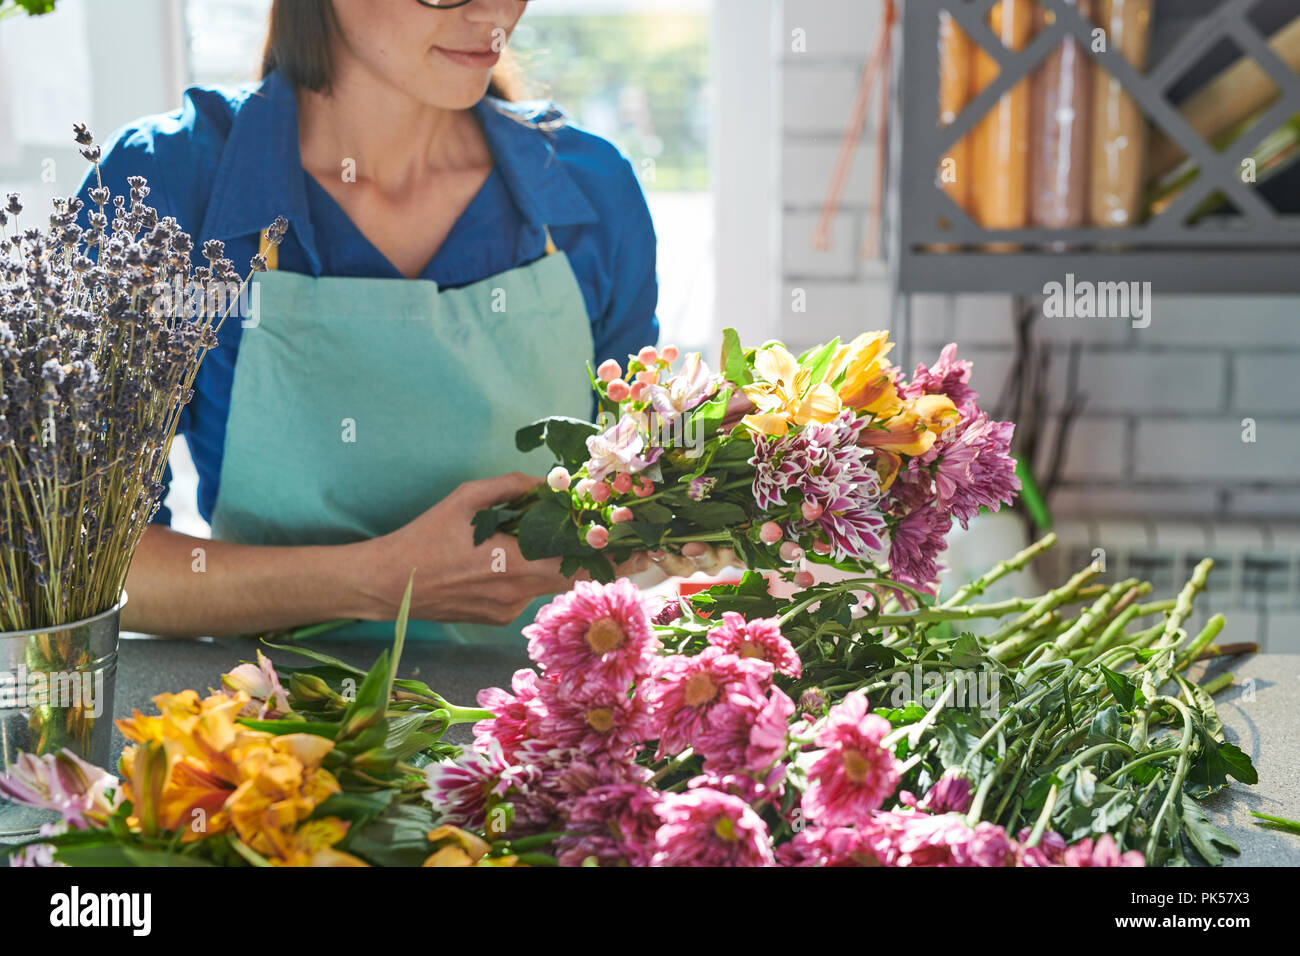 Florist Arranging Beautiful Flowers - Stock Image